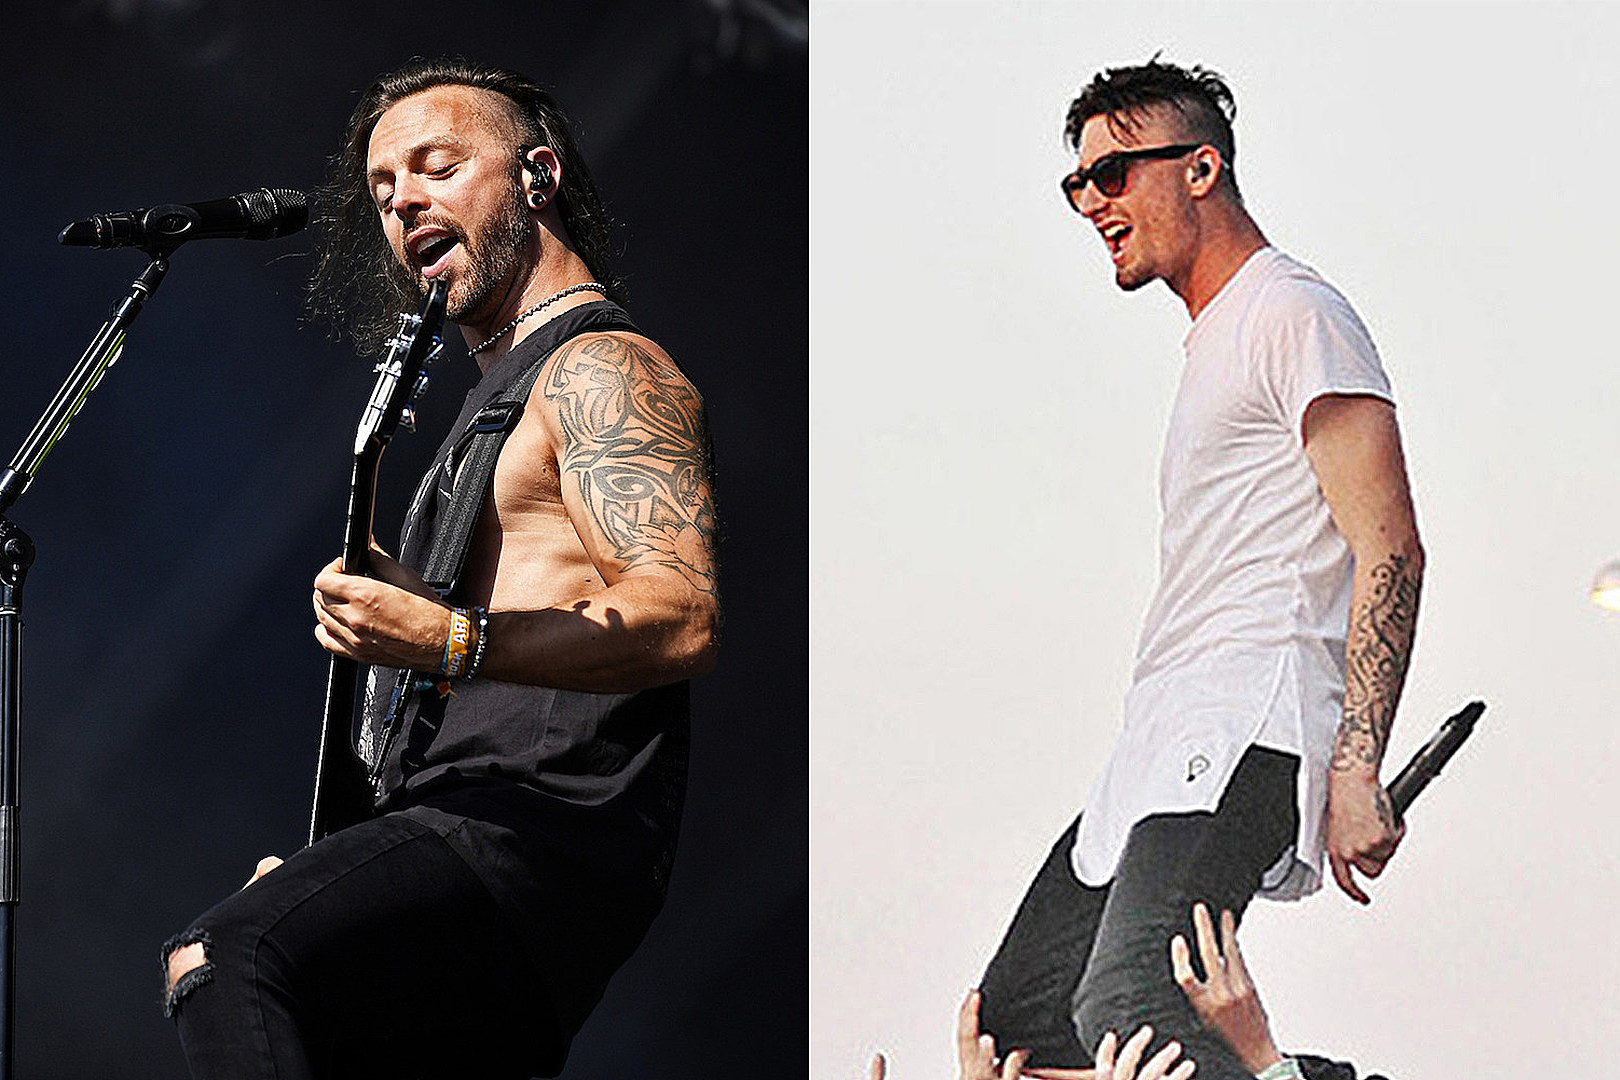 Bullet for My Valentine's Matt Tuck Offers 'Massive Respect' to We Came as Romans